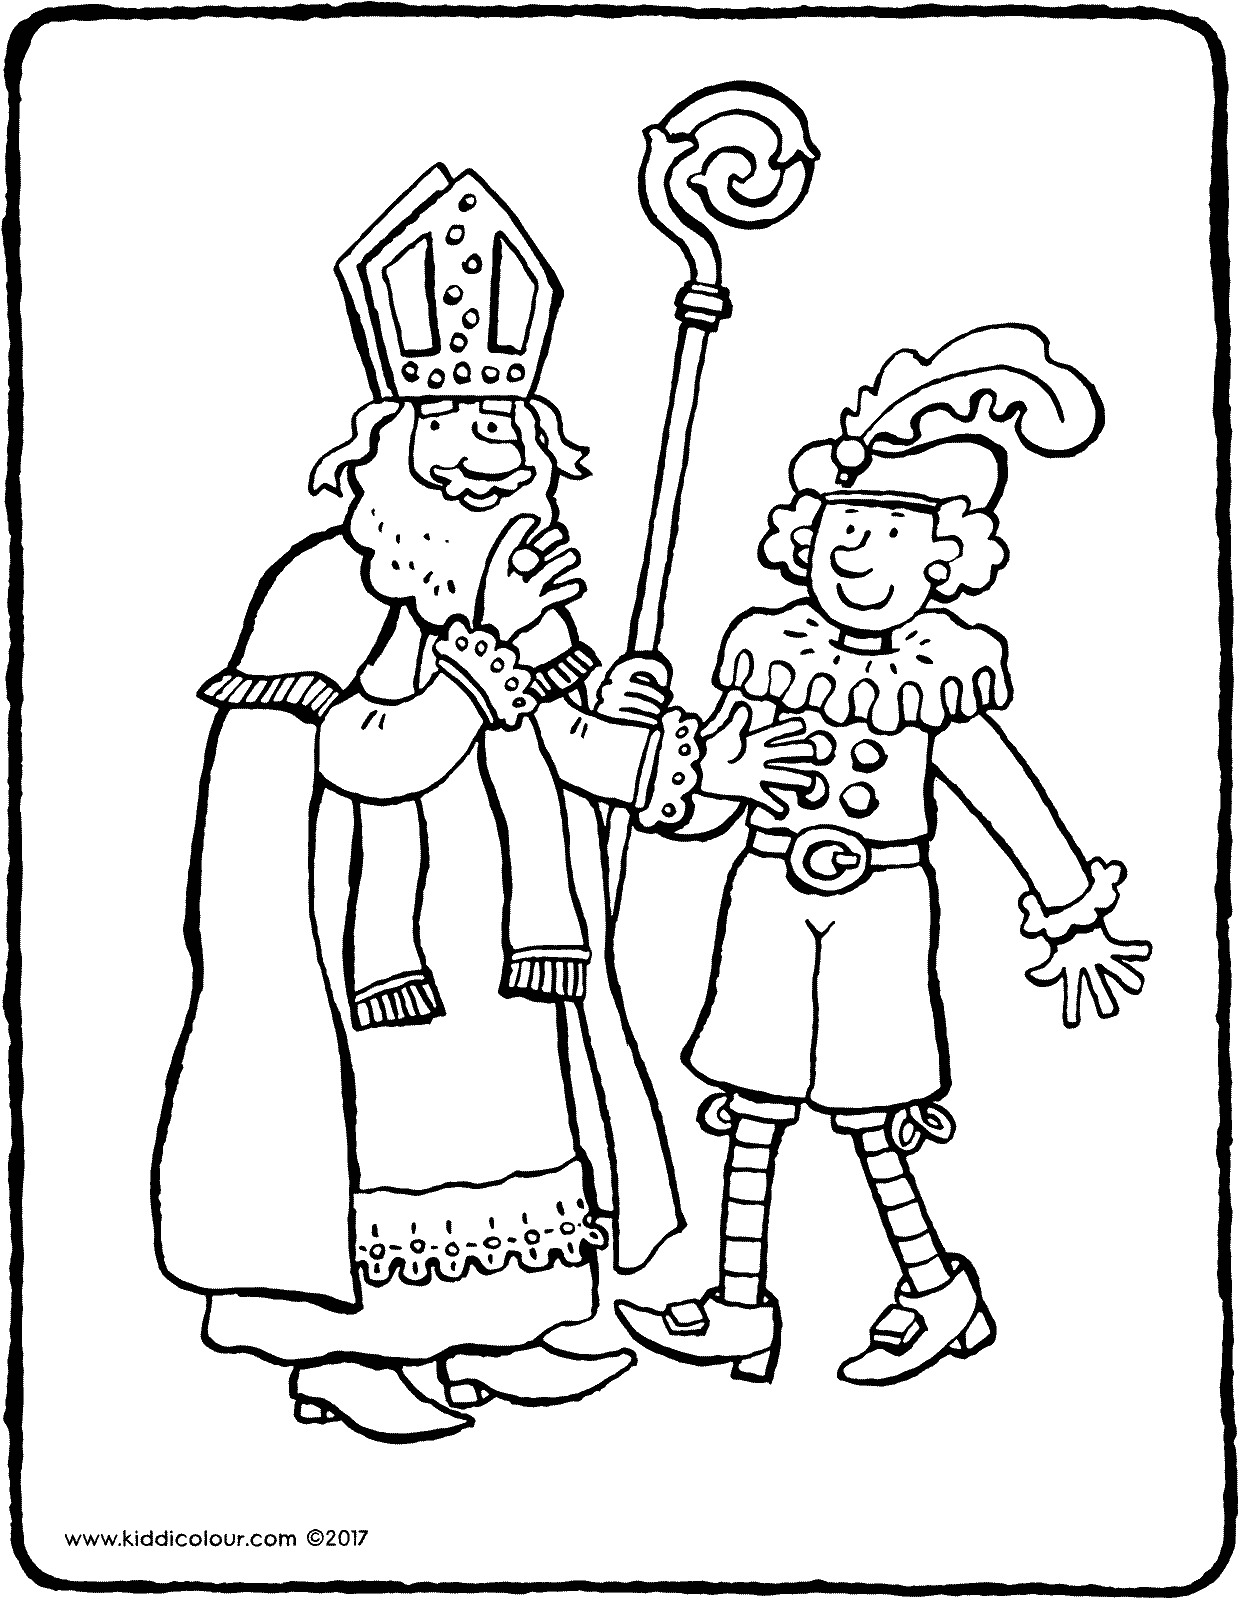 Saint Nicholas and Black Pete colouring page page drawing picture 01V